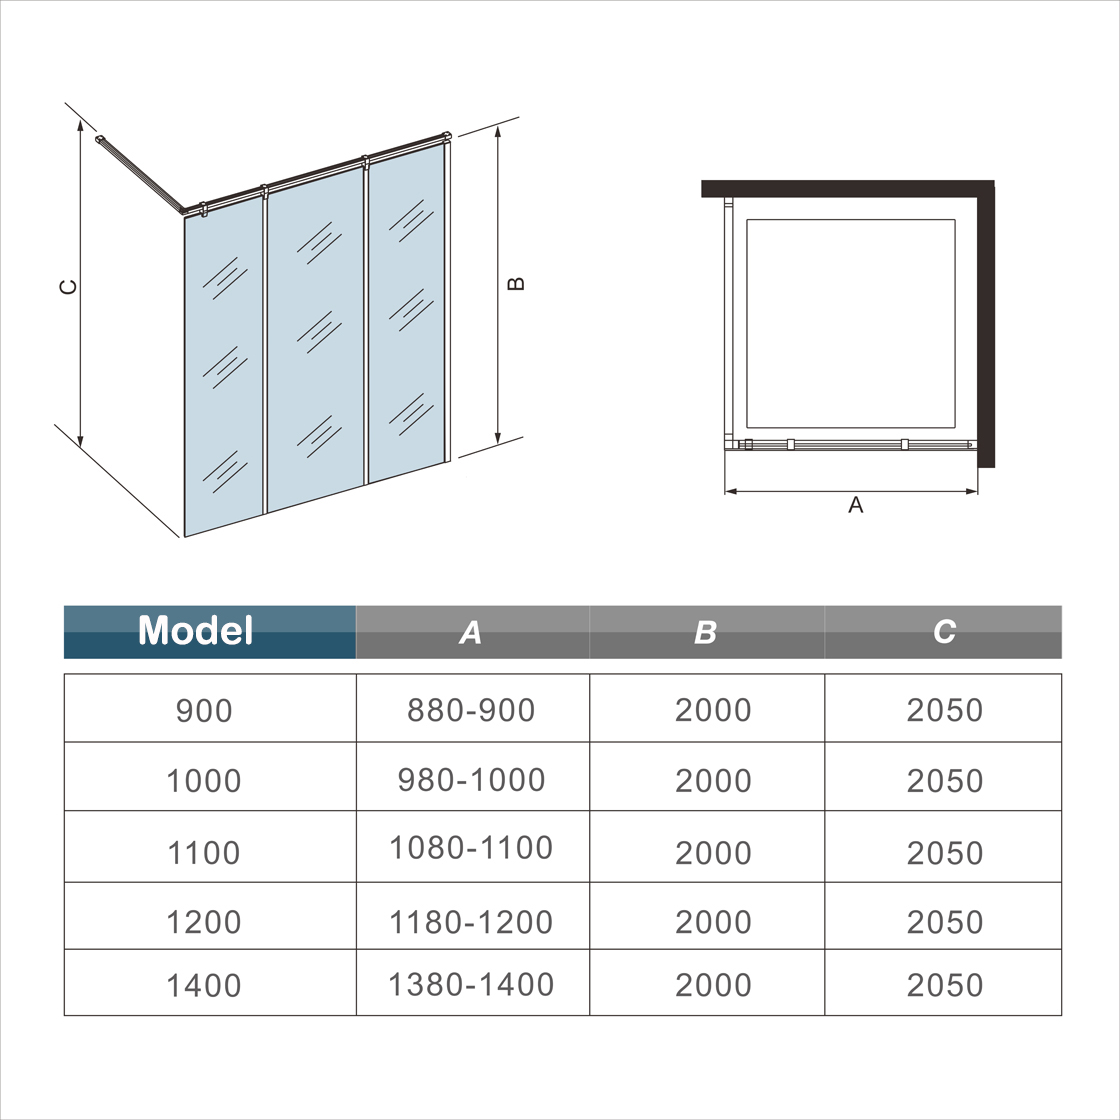 1200x2000 Wet Room Shower Enclosure Mirror Glass Screen